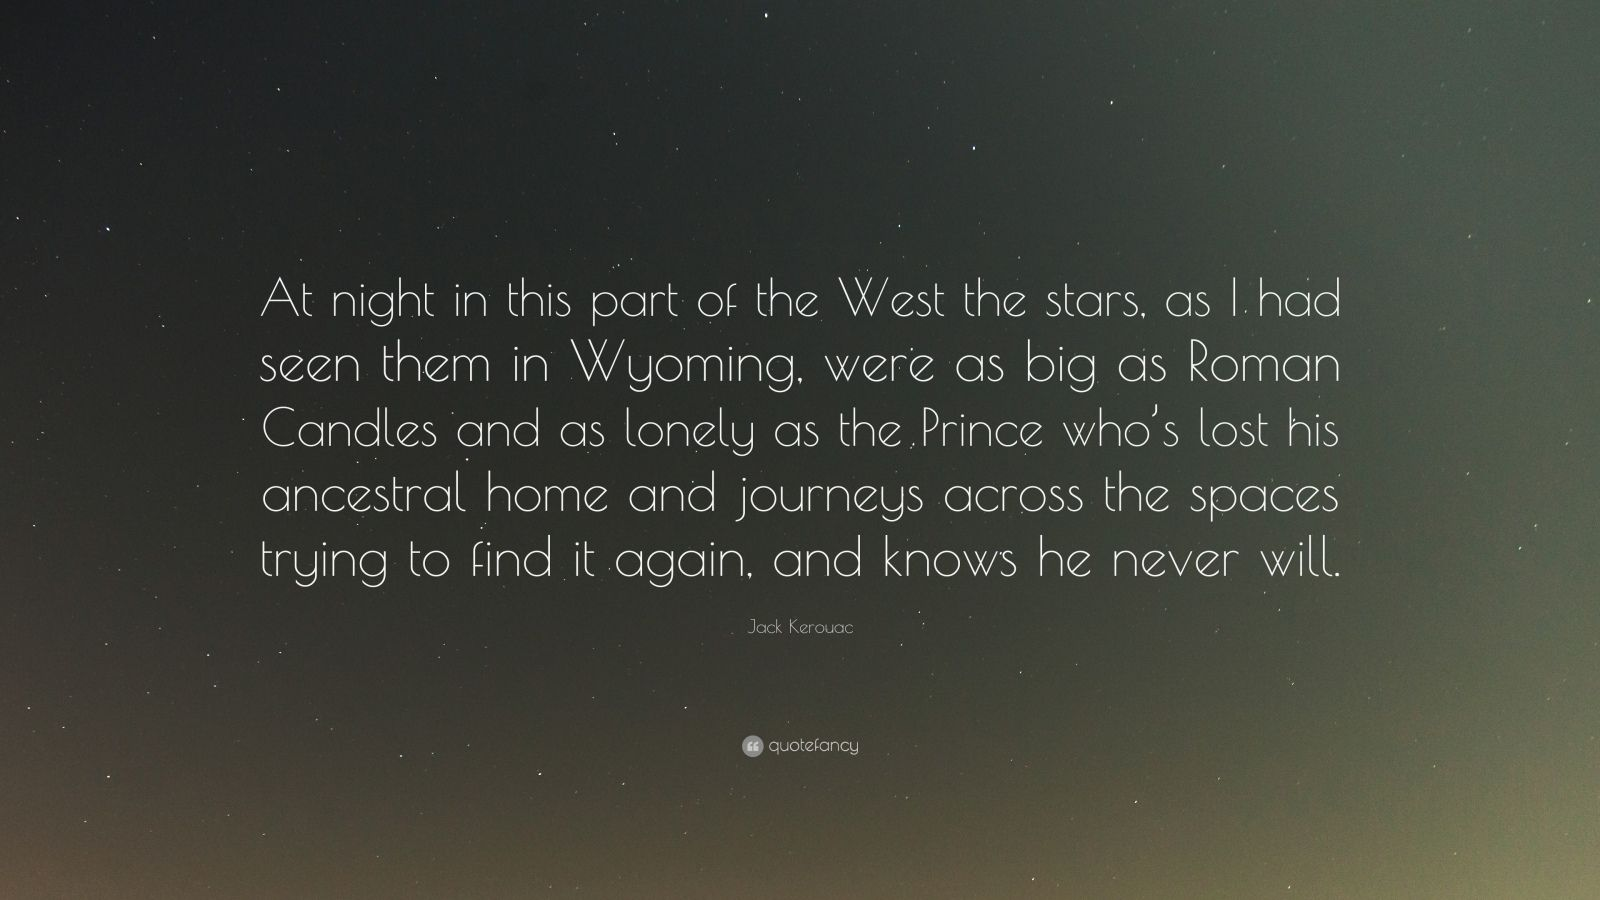 """Jack Kerouac Quote: """"At night in this part of the West the stars, as I had seen them in Wyoming, were as big as Roman Candles and as lonely as the Prince who's lost his ancestral home and journeys across the spaces trying to find it again, and knows he never will."""""""